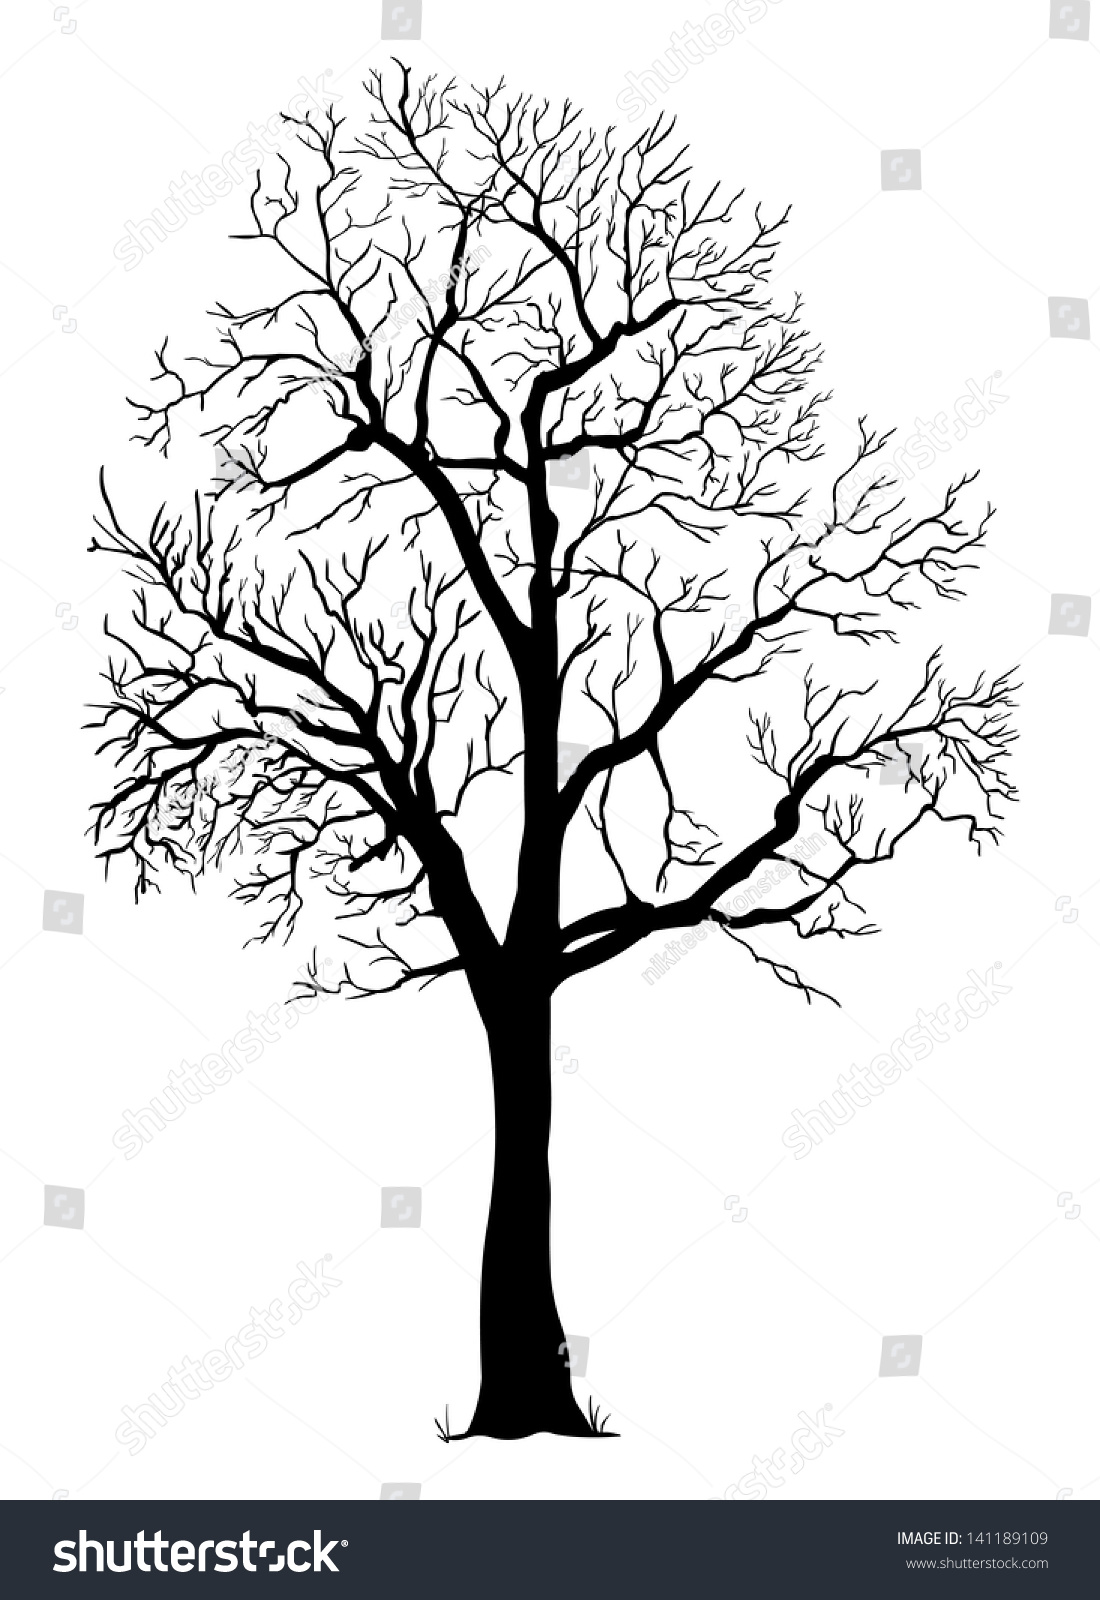 Gallery For gt Leafless Tree Silhouette